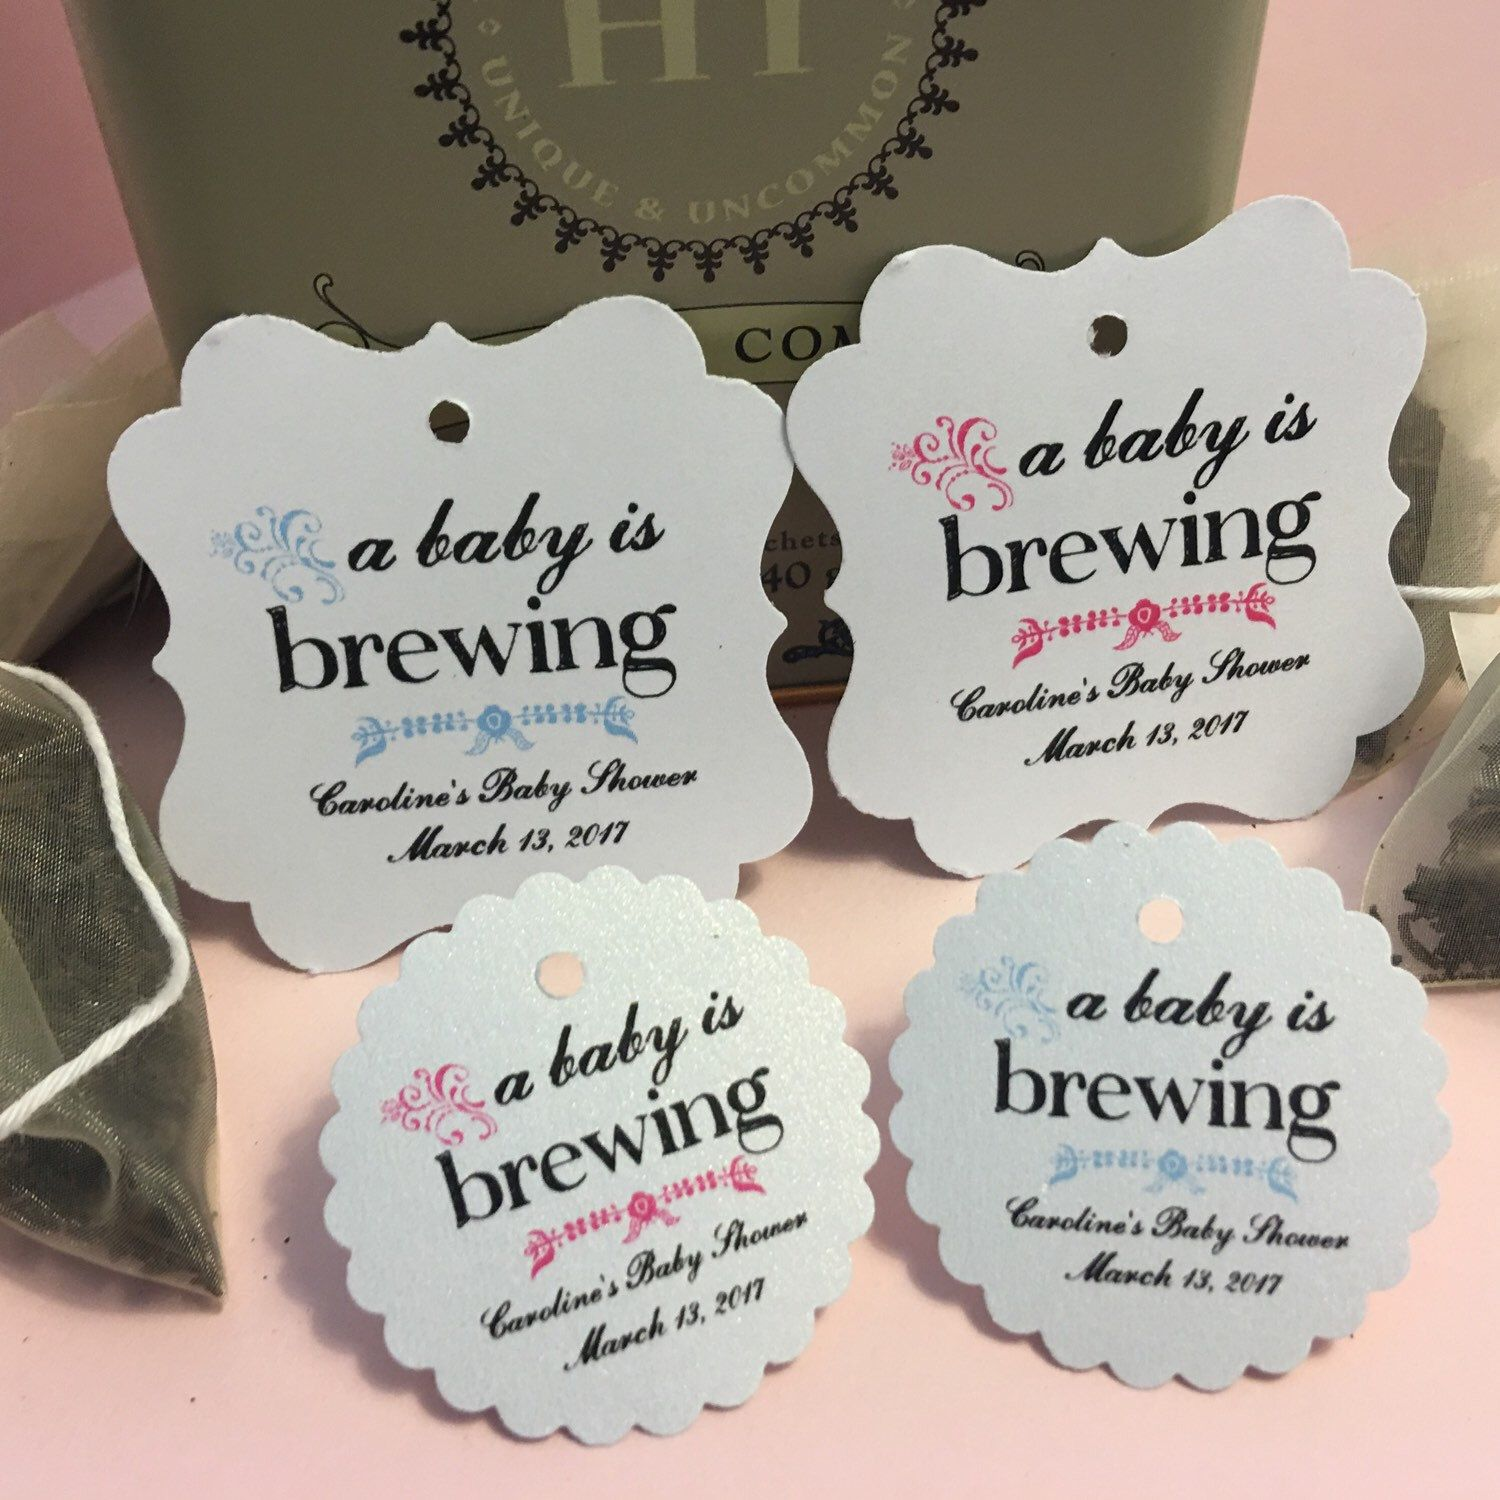 A baby is brewing! Share your most favorite tea with party guests ...